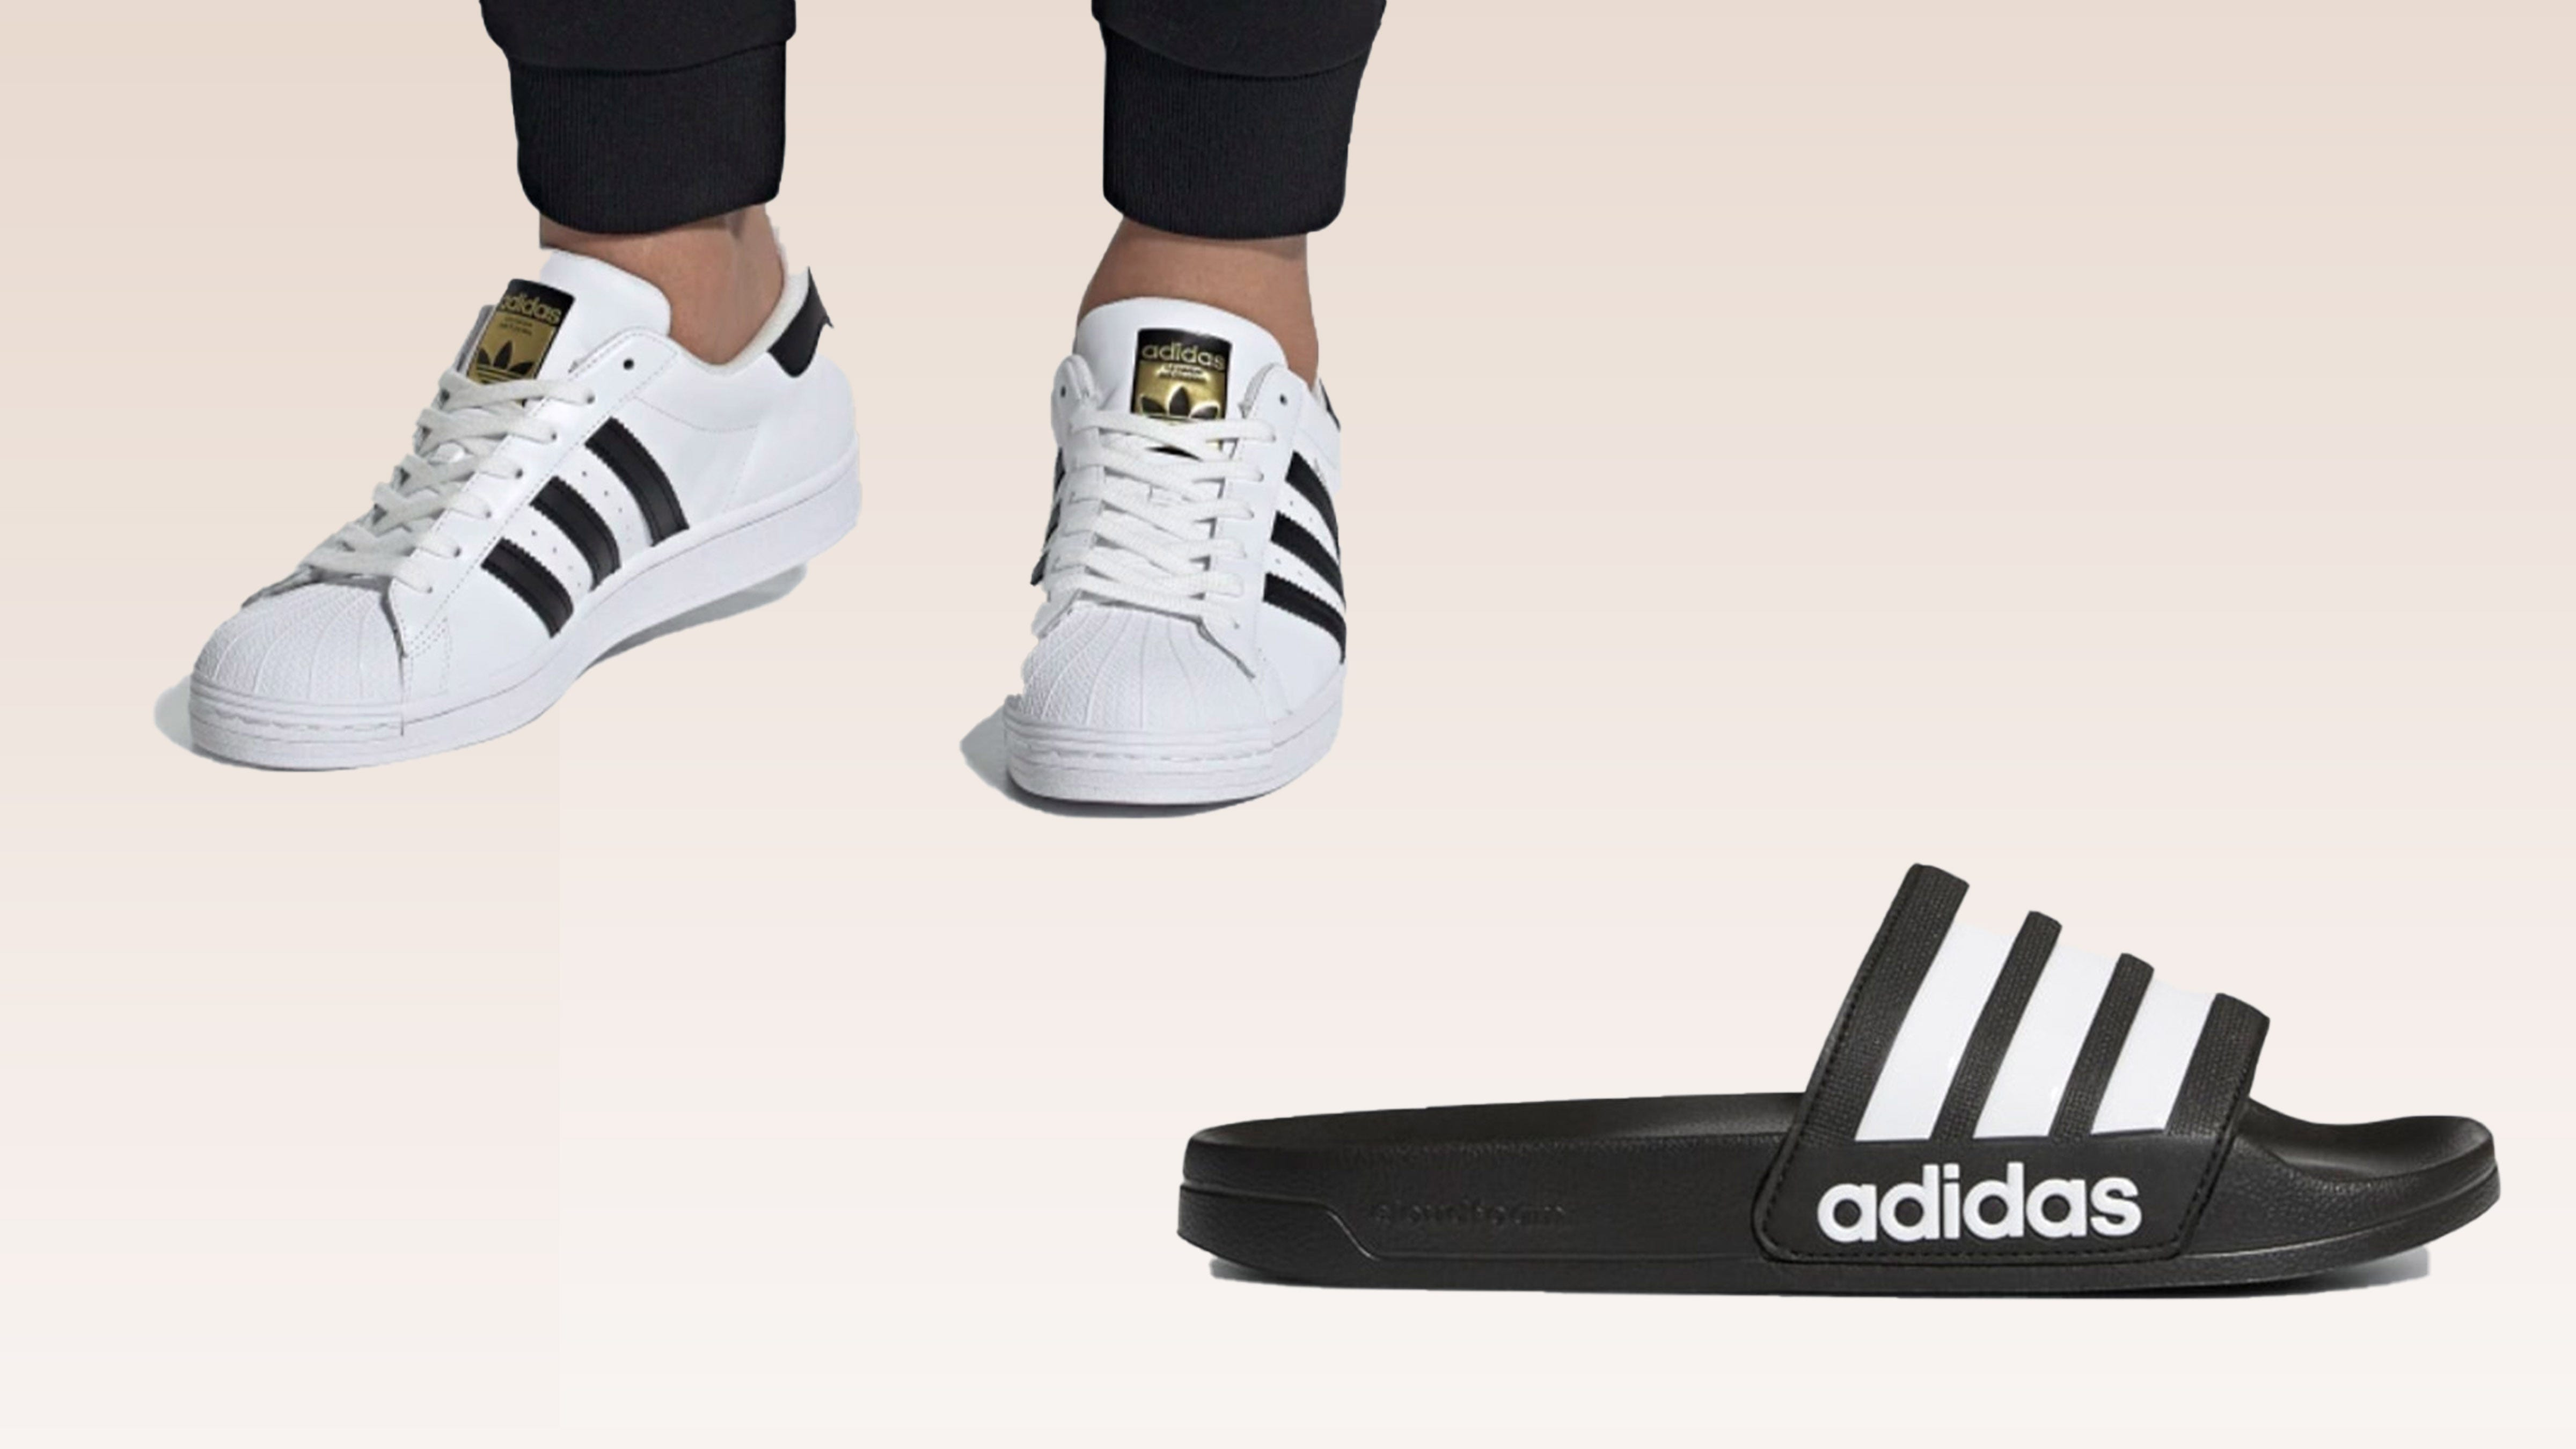 Adidas sale: Save on top-rated shoes and apparel